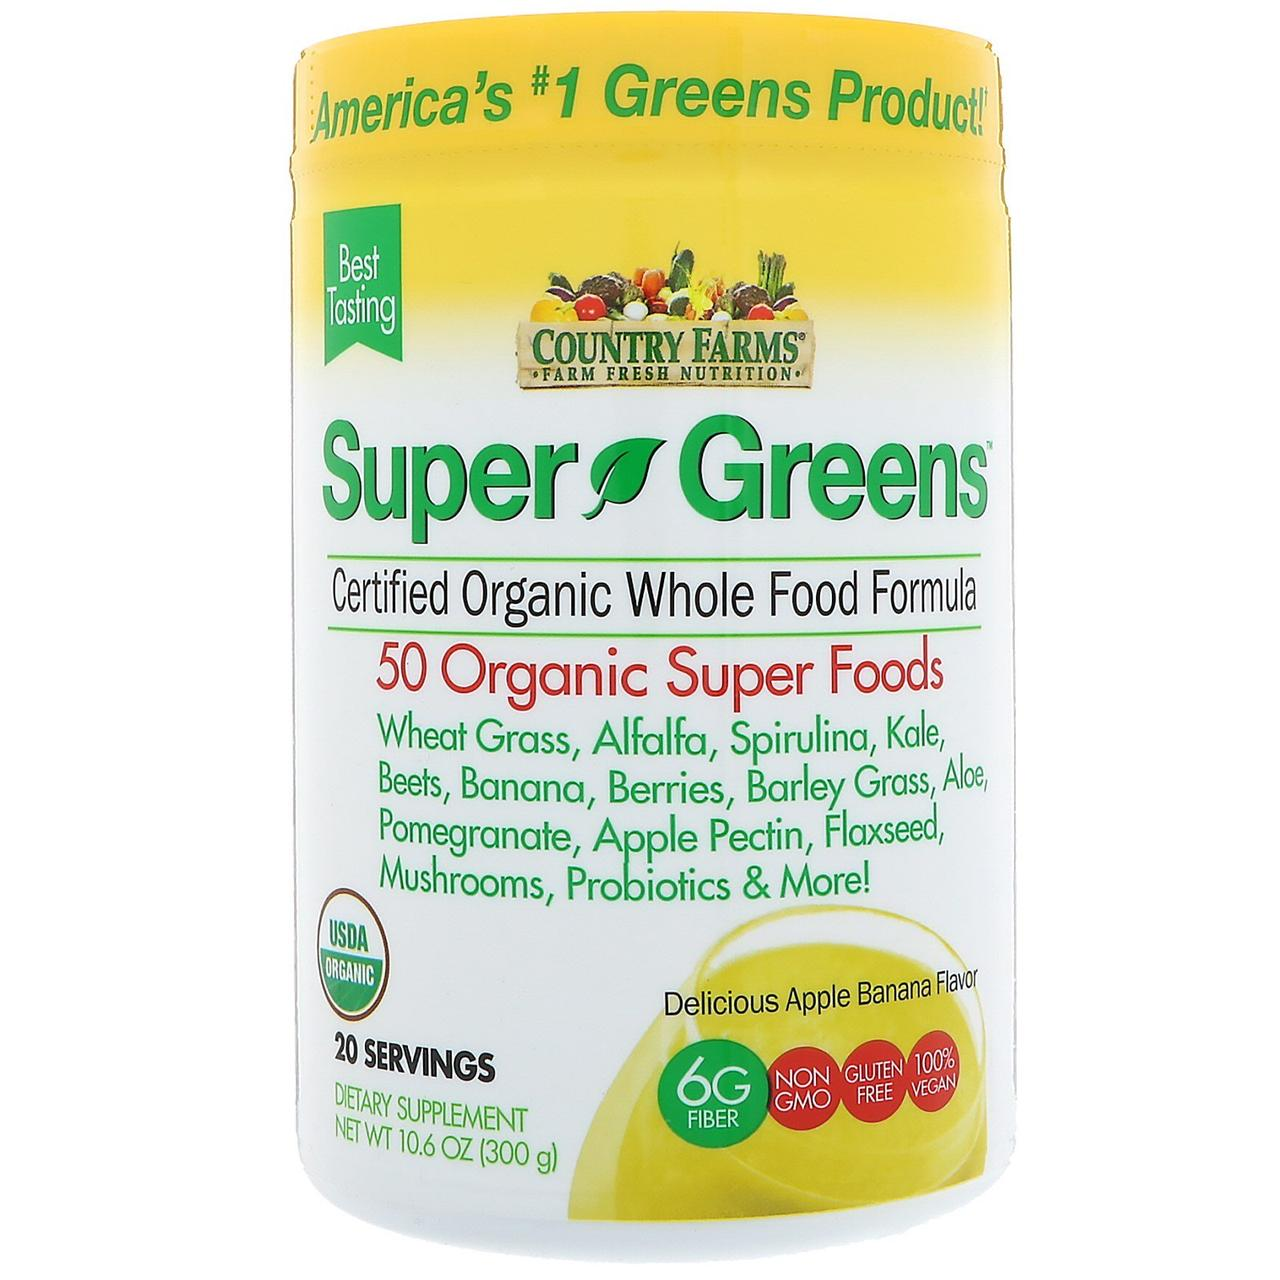 Country Farms, Super Greens, Certified Organice Whole Food Formula, Delicious Apple Banana Flavor, 10.6 oz (300 g)